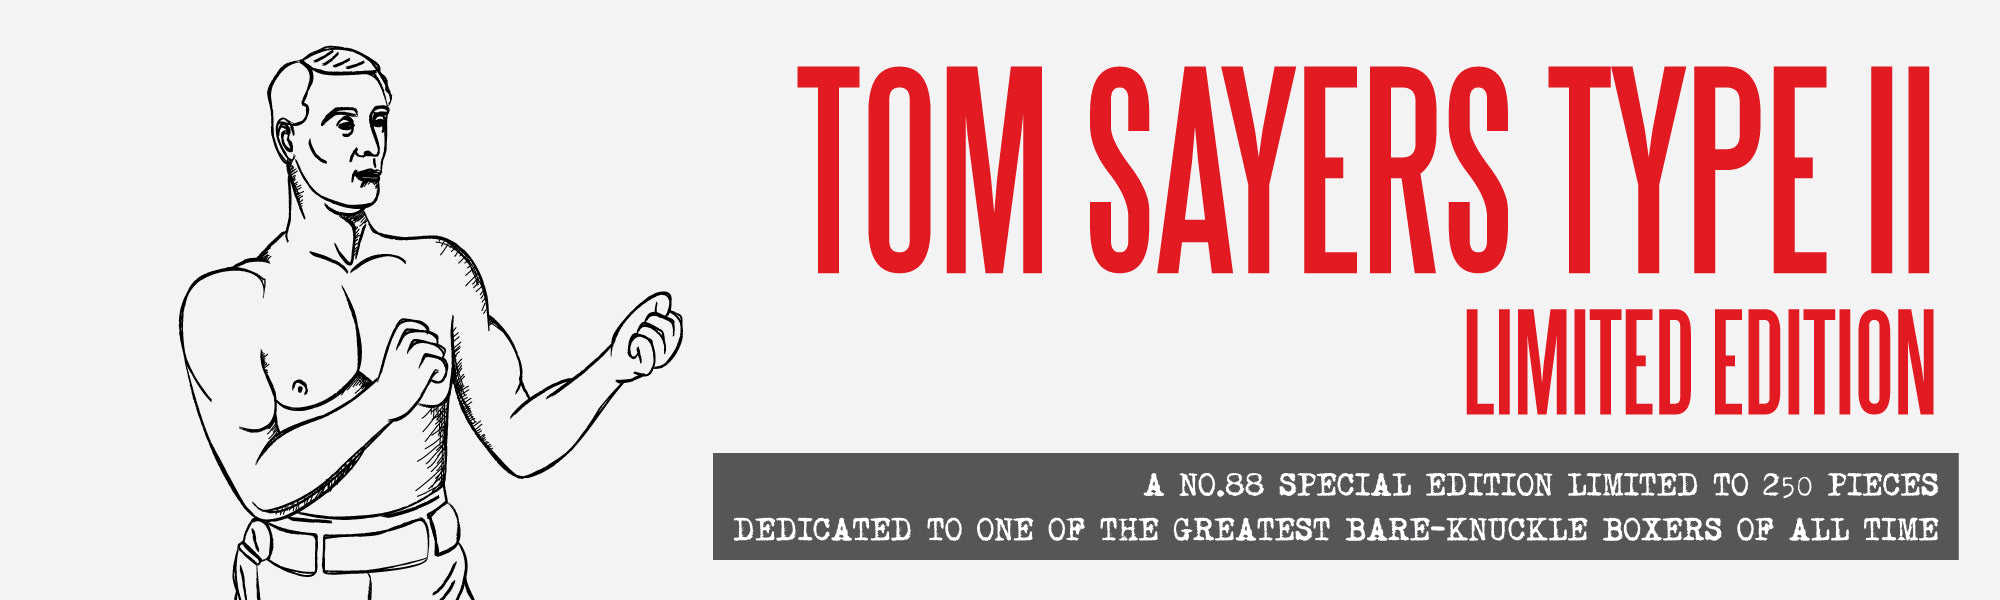 Tom Sayers Limited Edition